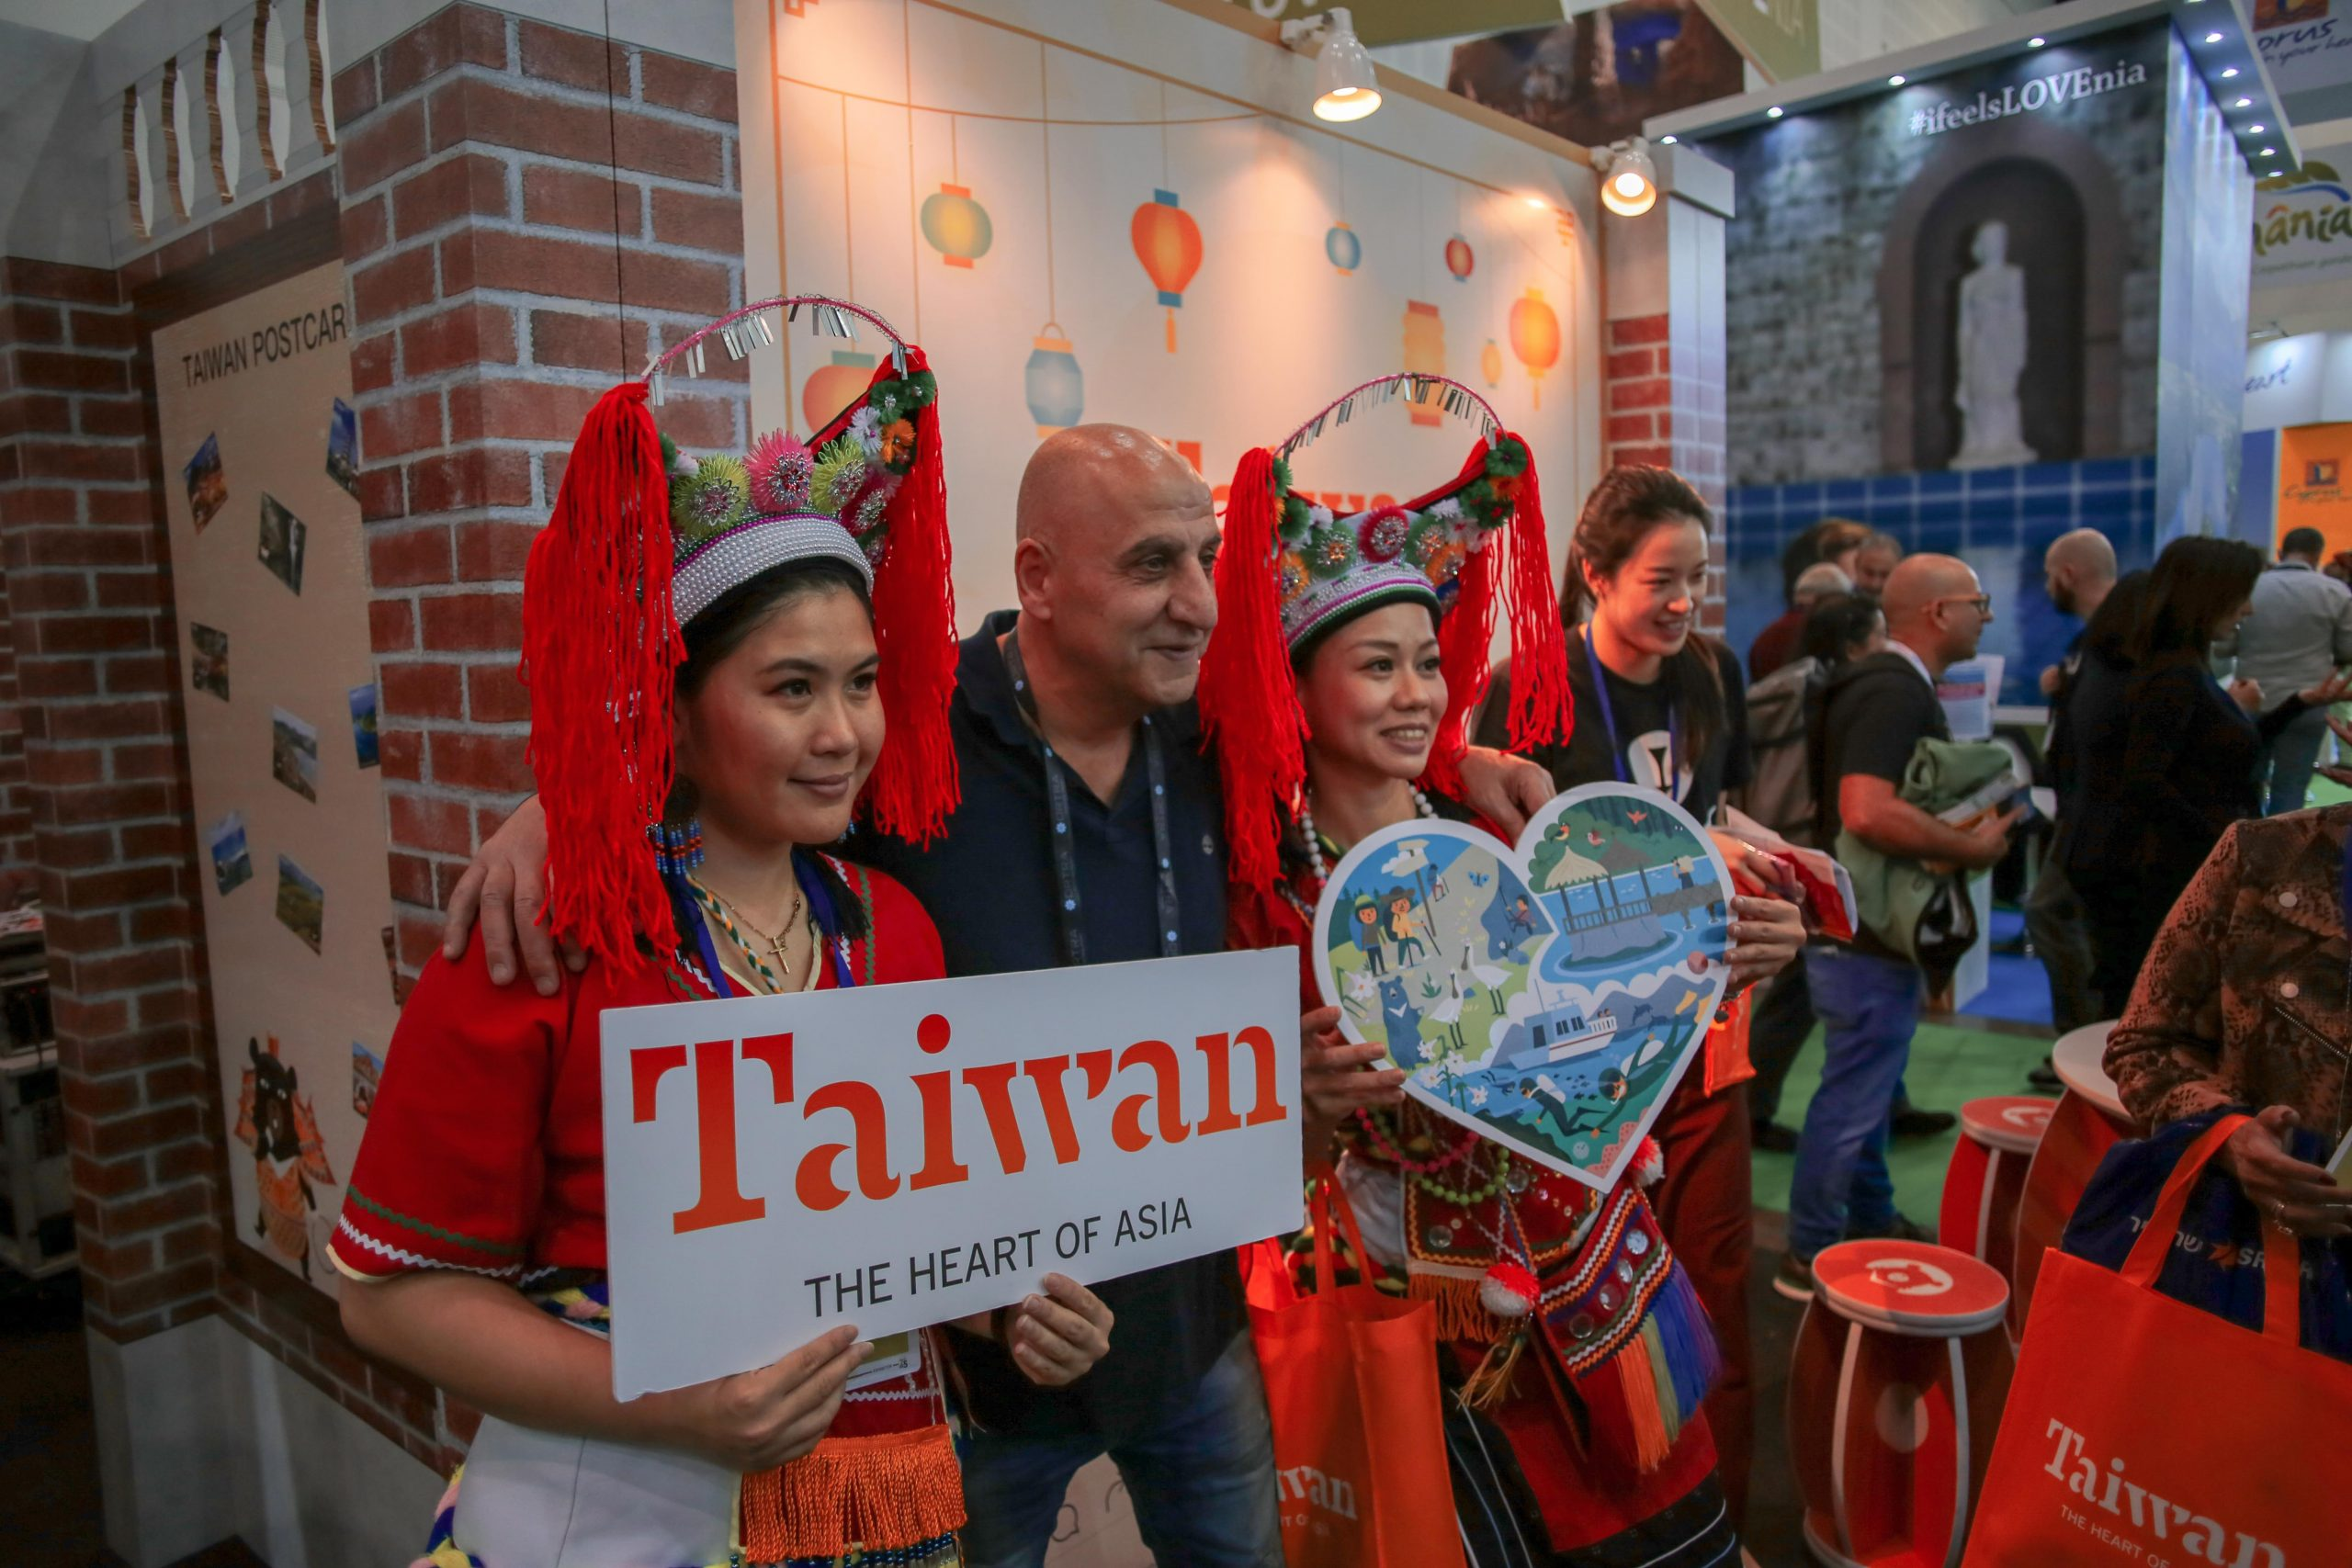 Taiwan National Day 2020: Taiwan the Heart of Asia